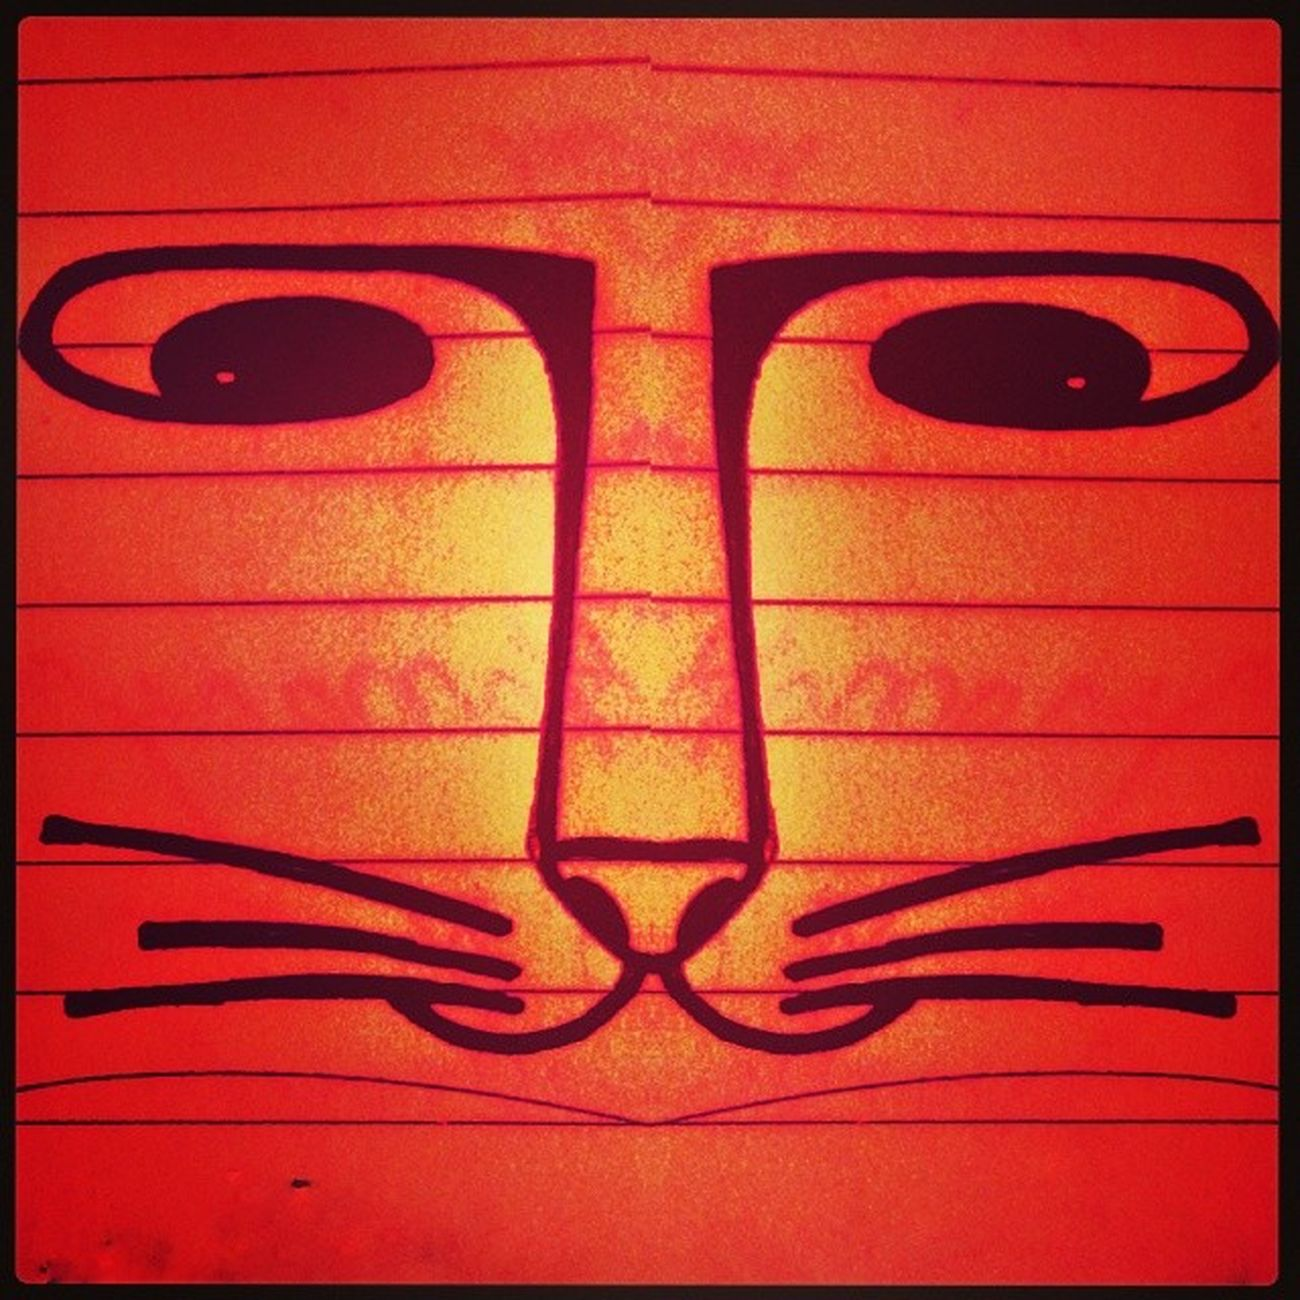 CatCatBurningBright. Catsofchai Catseriesofchaiytra Catsofmarch Catinsketch catdoodle cataday brightorange cat edited reflect symmetry instalove instalike instacat instadraw experiment ilovecats instasketch instapic catinsky catscribble